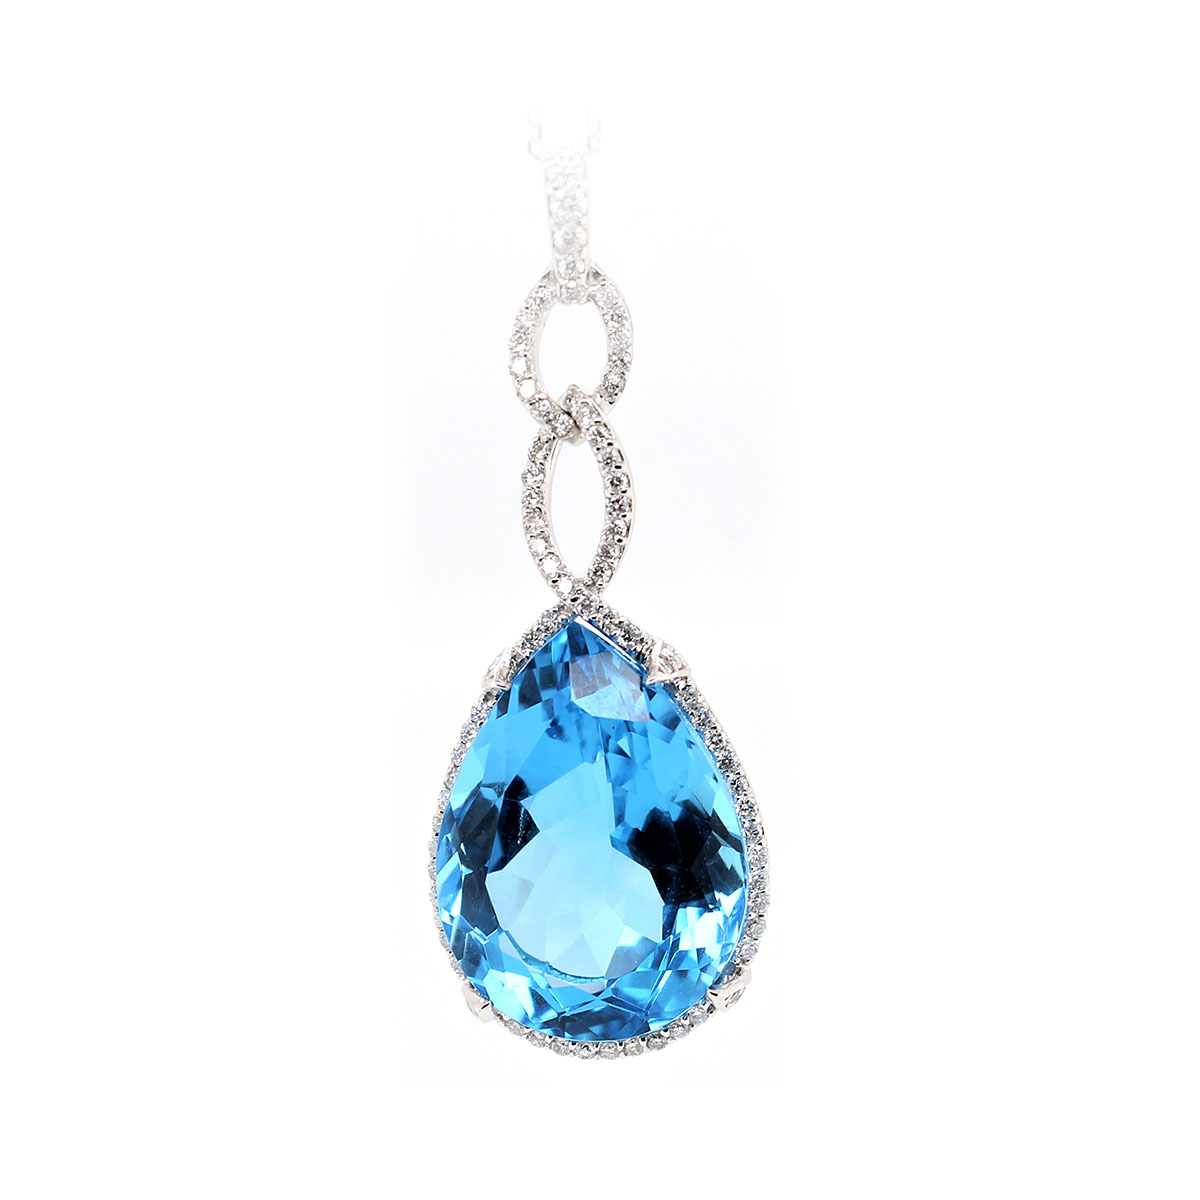 14 Karat White Gold Pear Shaped Blue Topaz and Diamond Necklace